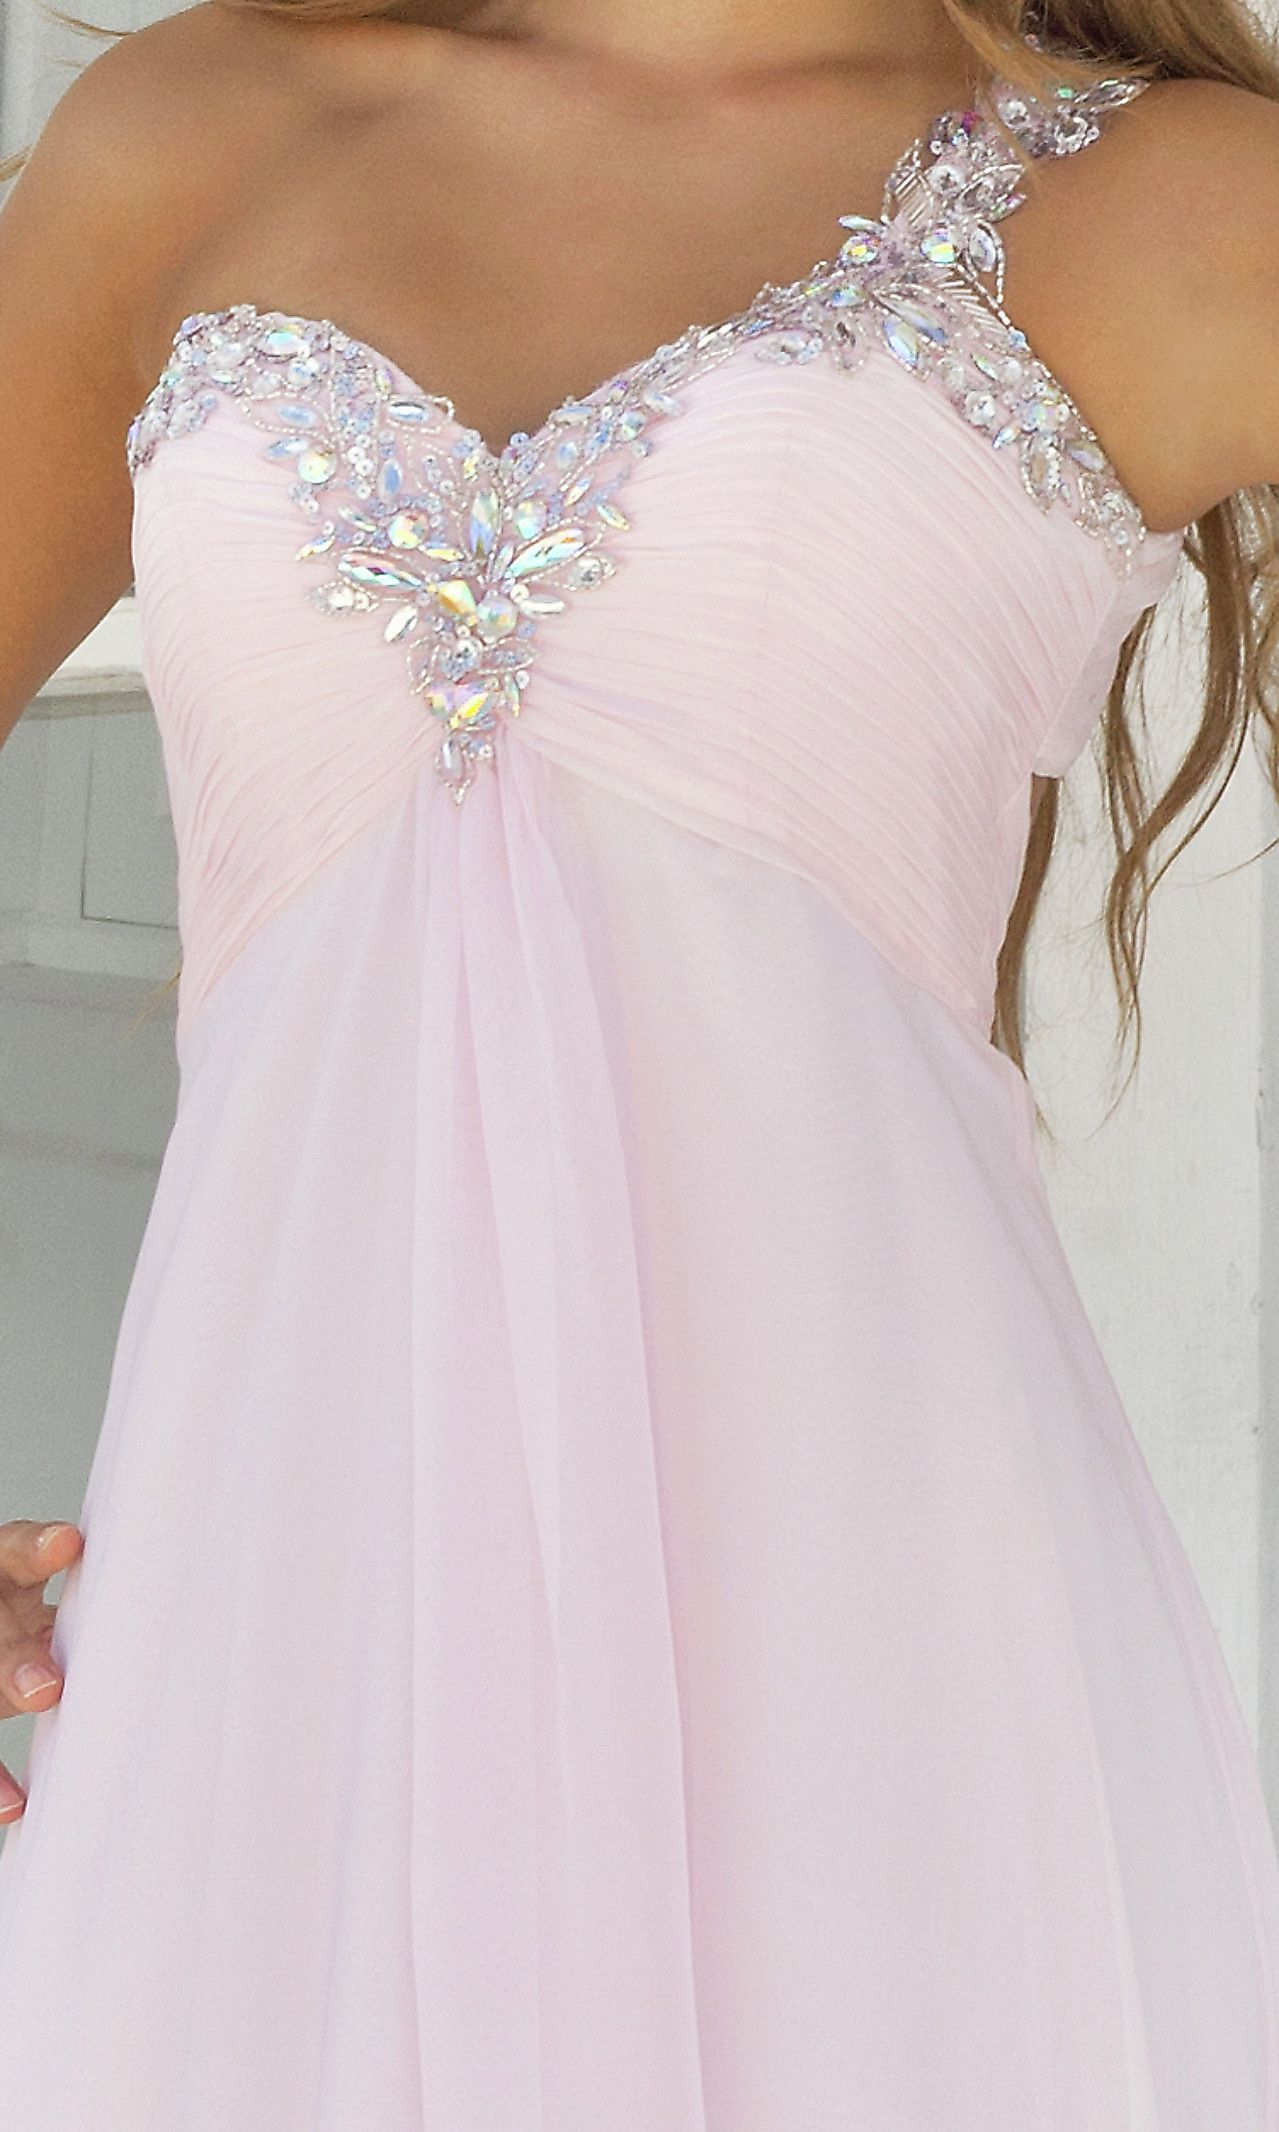 Pin by aulaura weedon on dresses pinterest prom elegant and